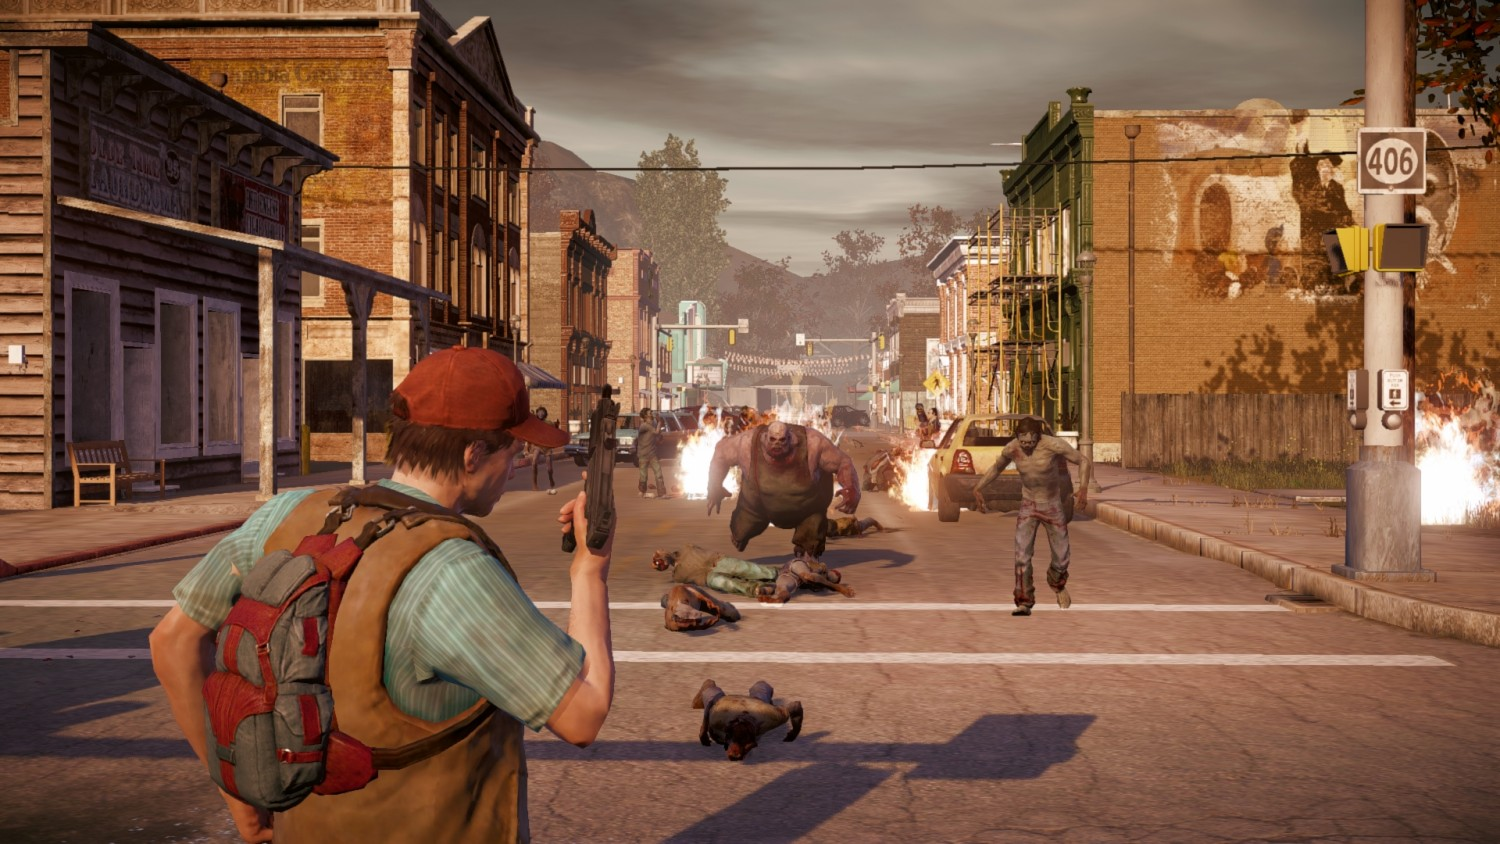 Most Viewed State Of Decay 2 Wallpapers 4k Wallpapers